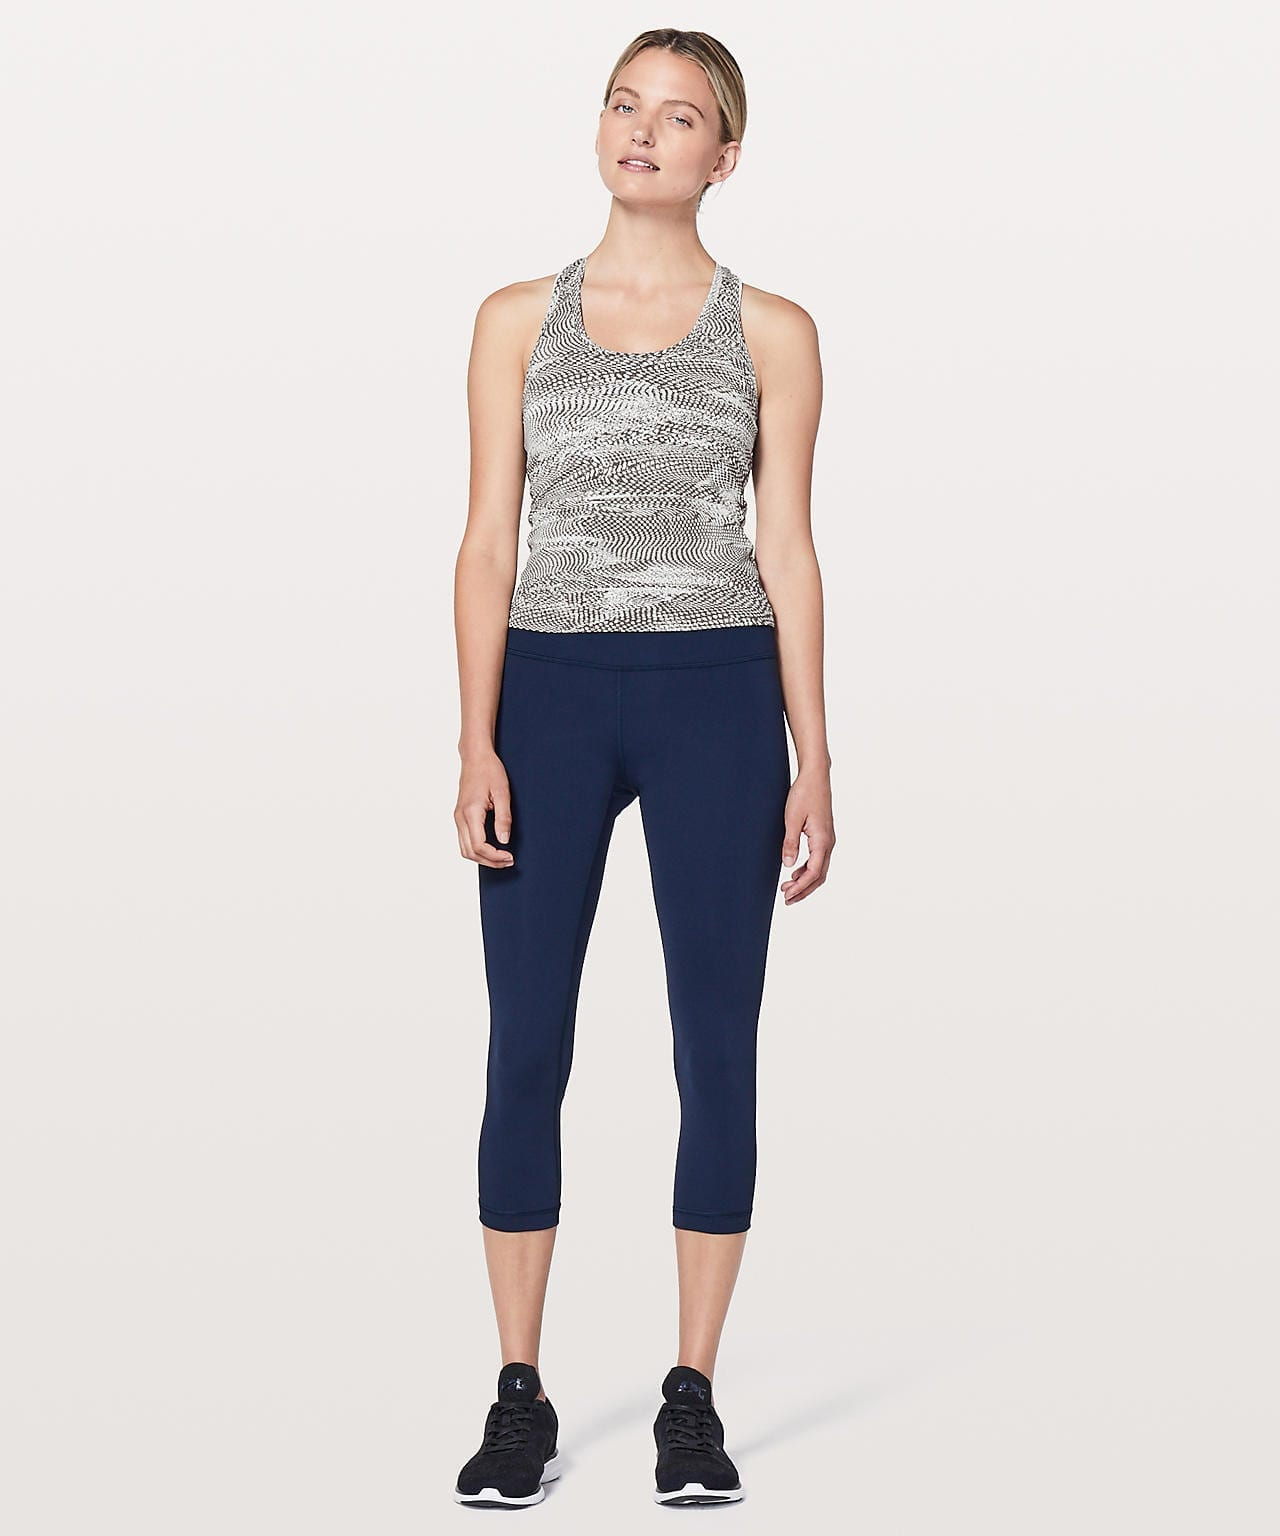 Cool Racerback II Race Length - Lululemon